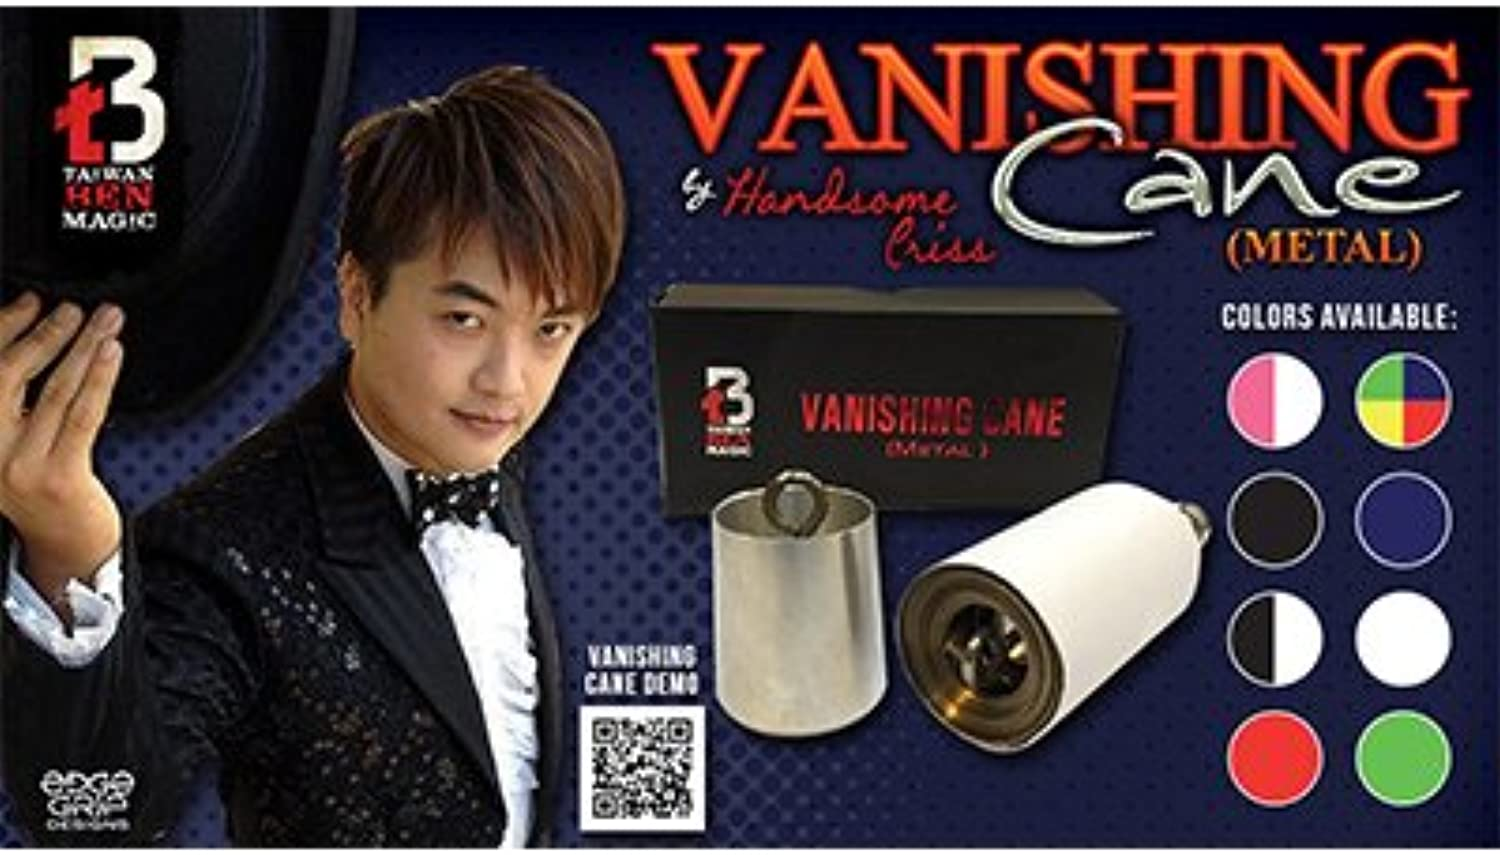 Murphys Vanishing Cane (Metal   Red) by Handsome Criss and Taiwan Ben Magic  Tricks